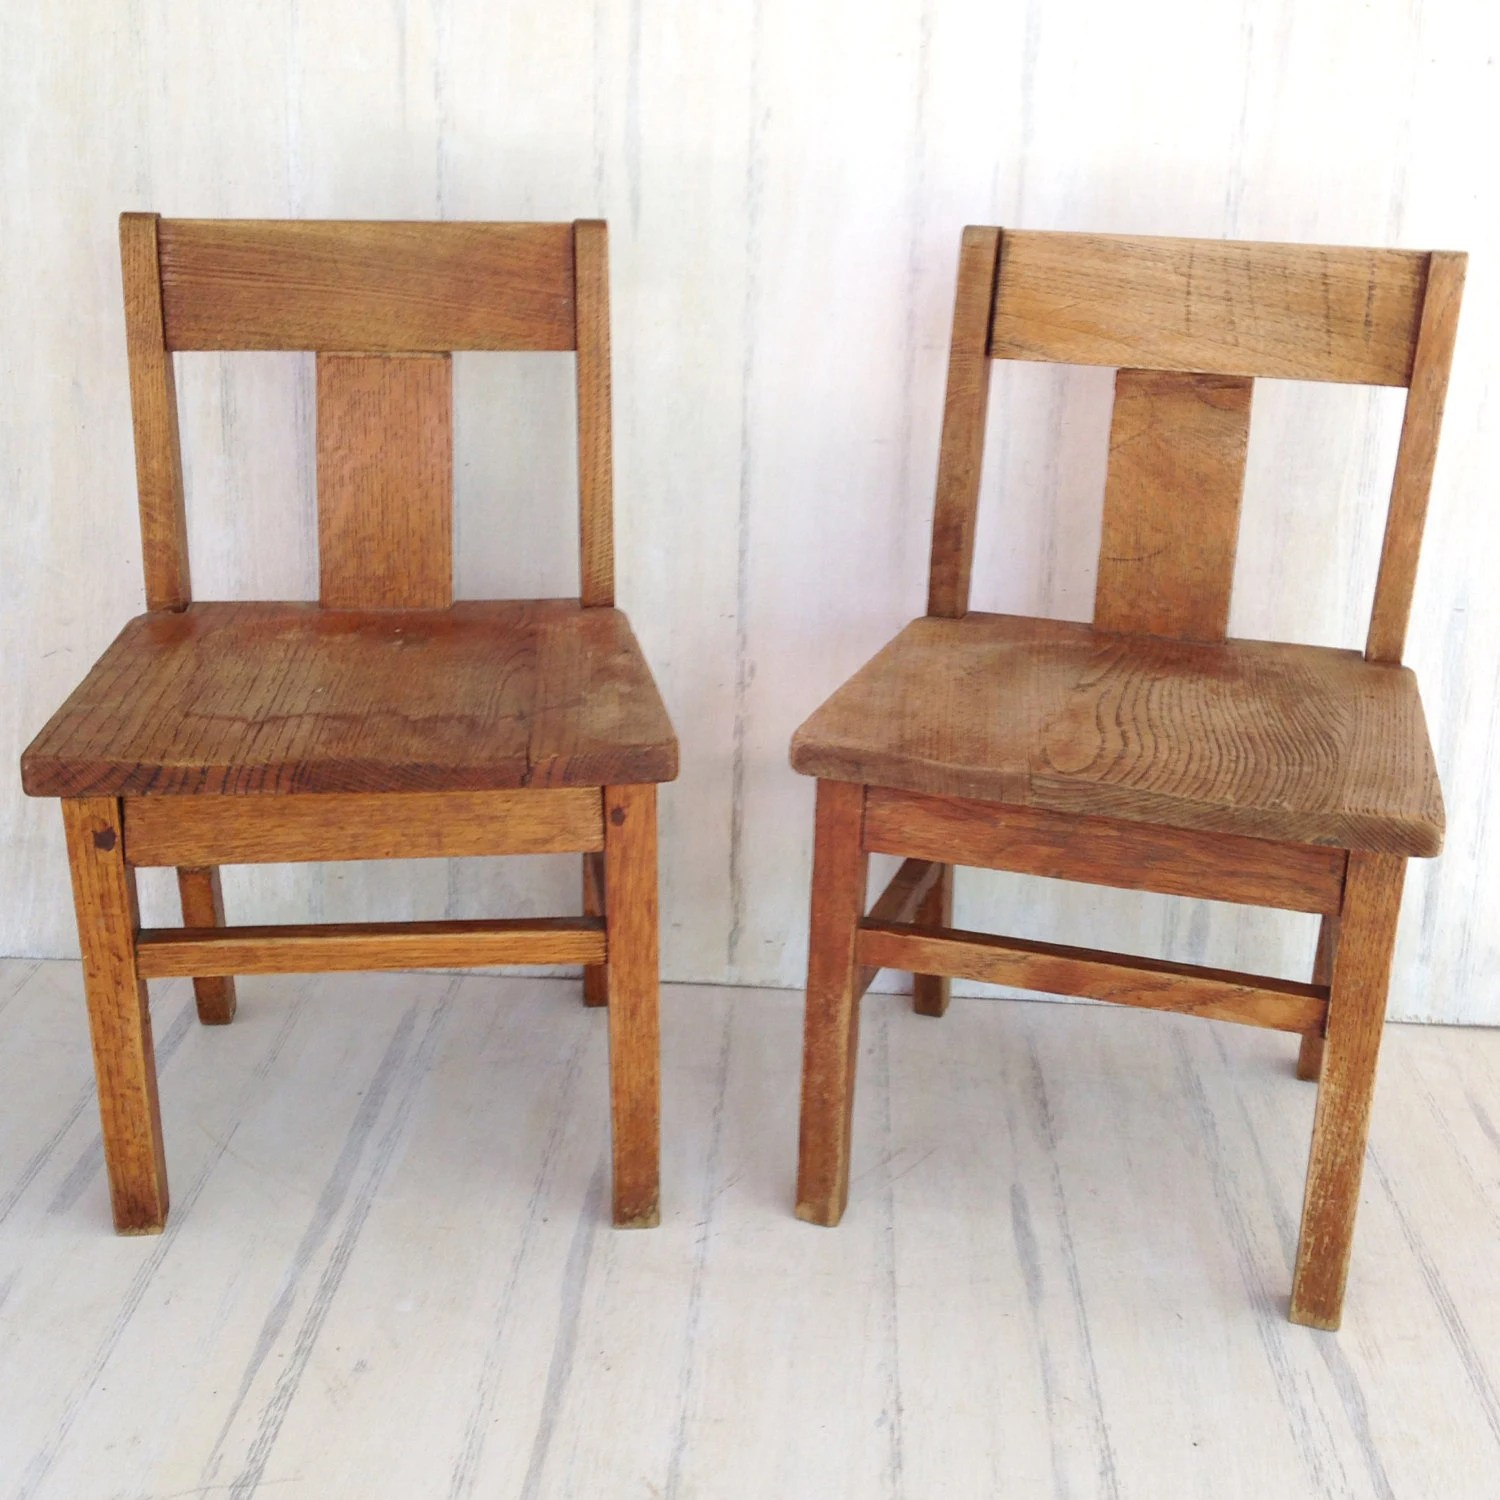 Wooden School Chairs Set Of Two Vintage Oak Wooden Childrens Chairs Old